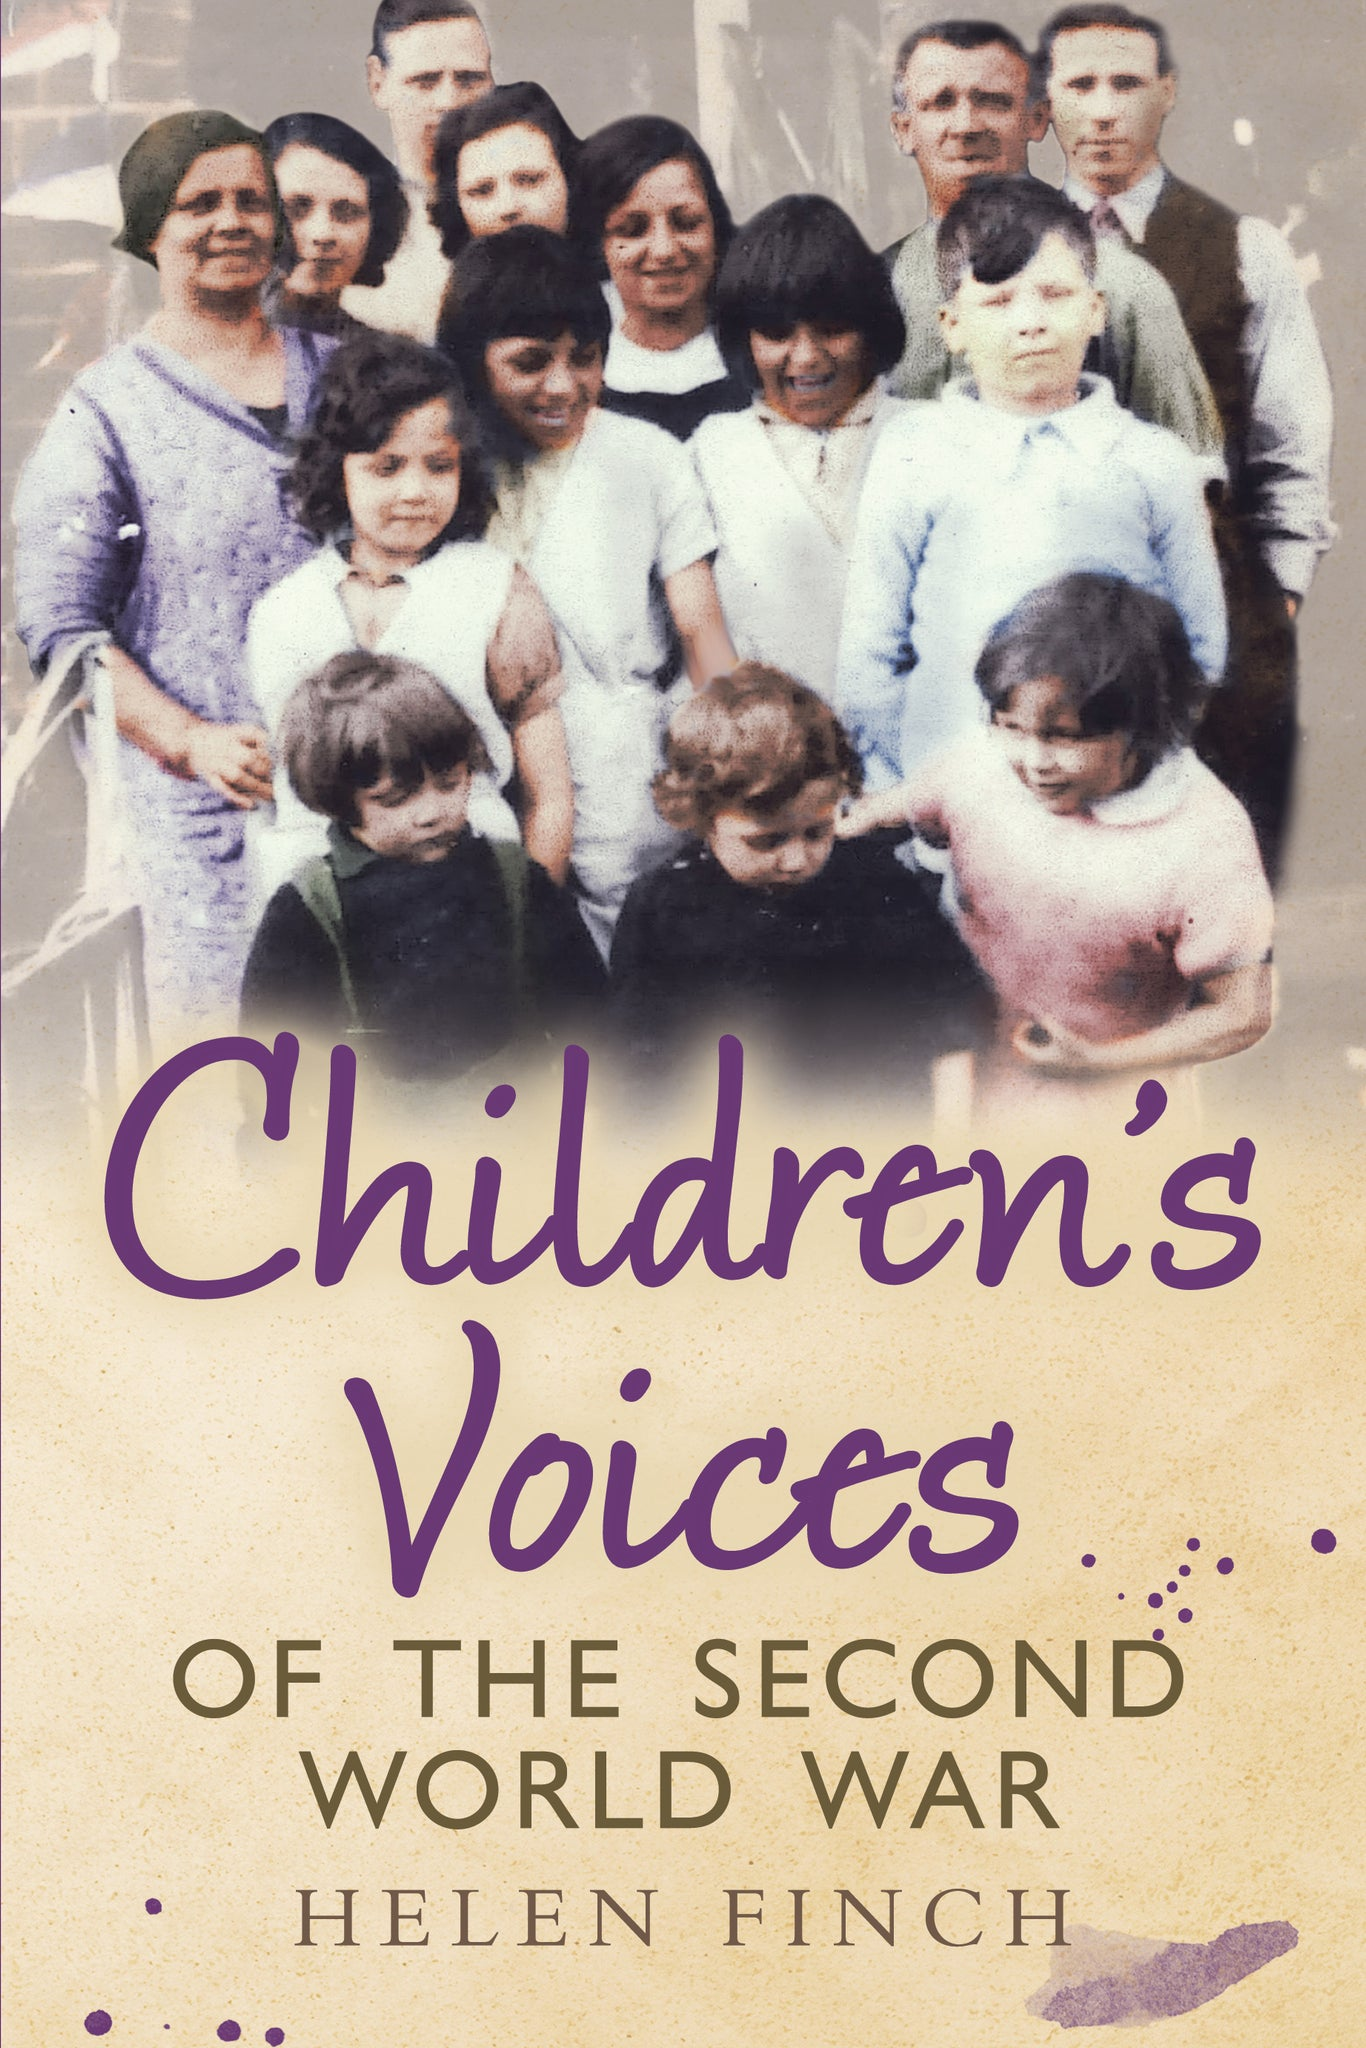 Children's Voices of the Second World War - published by Fonthill Media